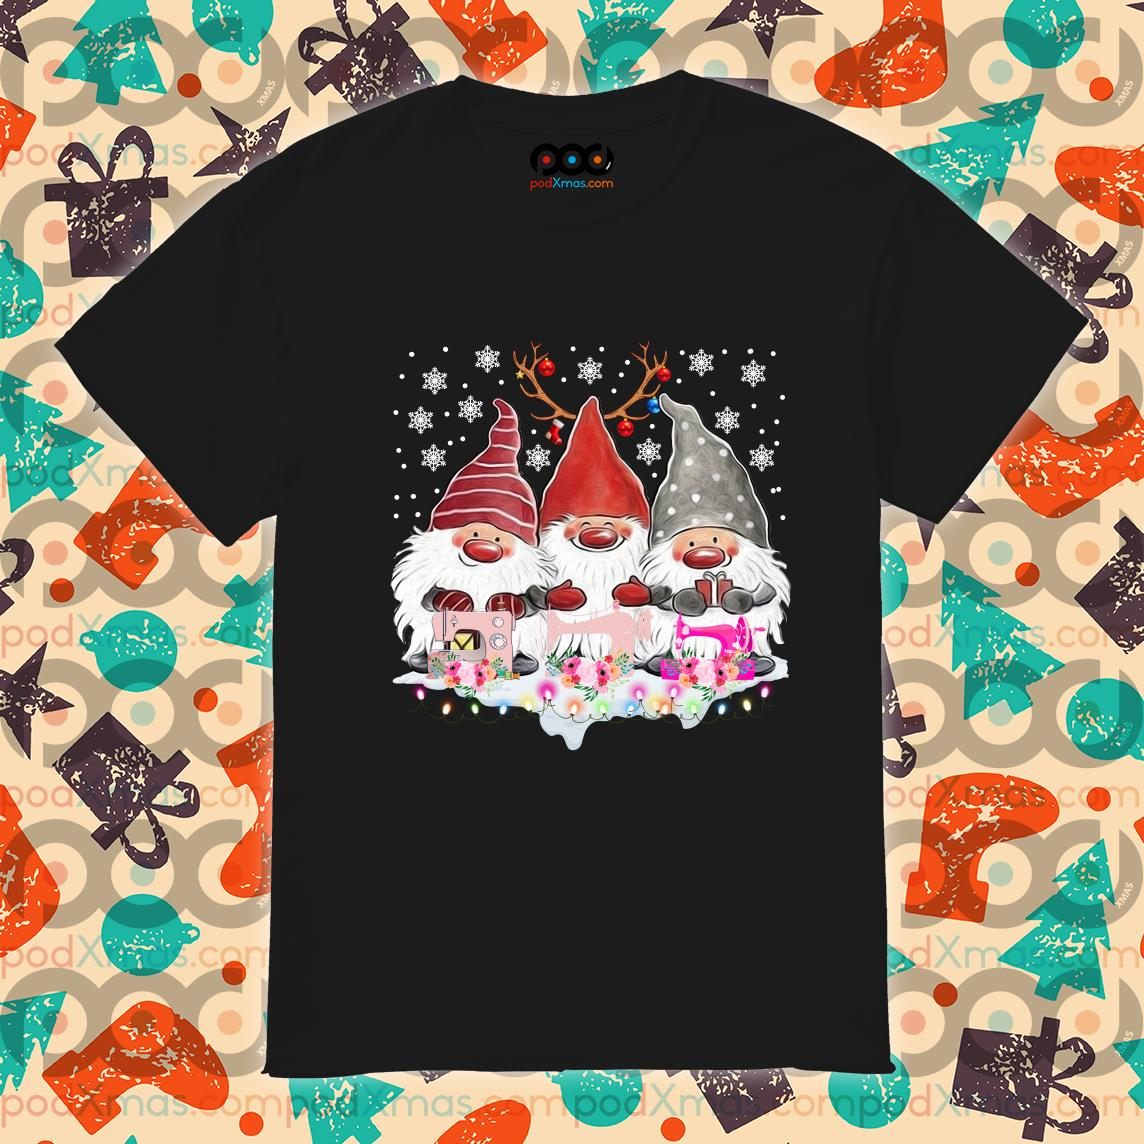 Gnomies Sewing Quilting Christmas shirt